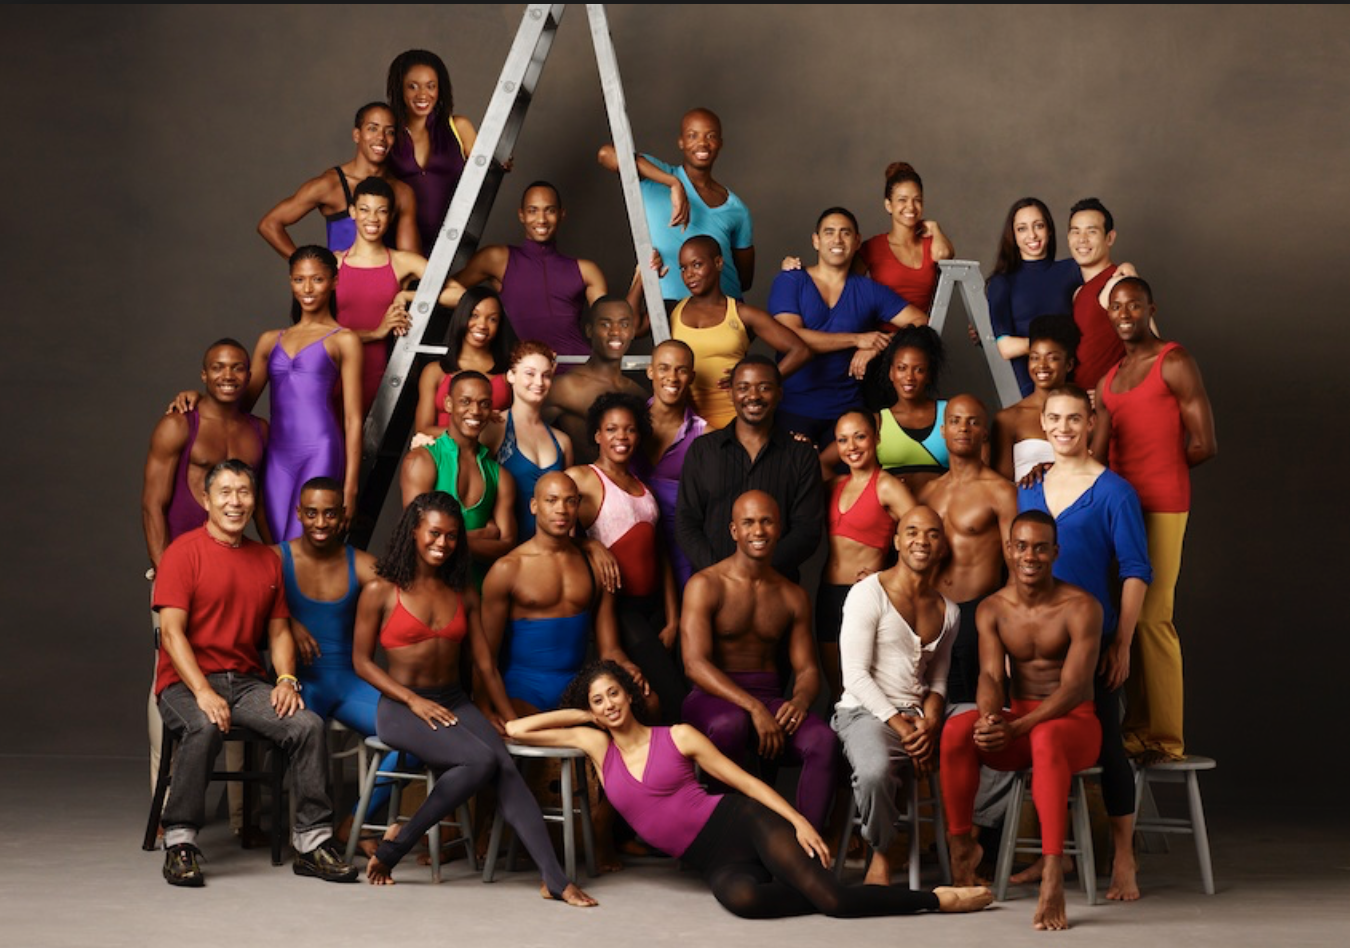 Photo Credit: Alvin Ailey American Dance Theater